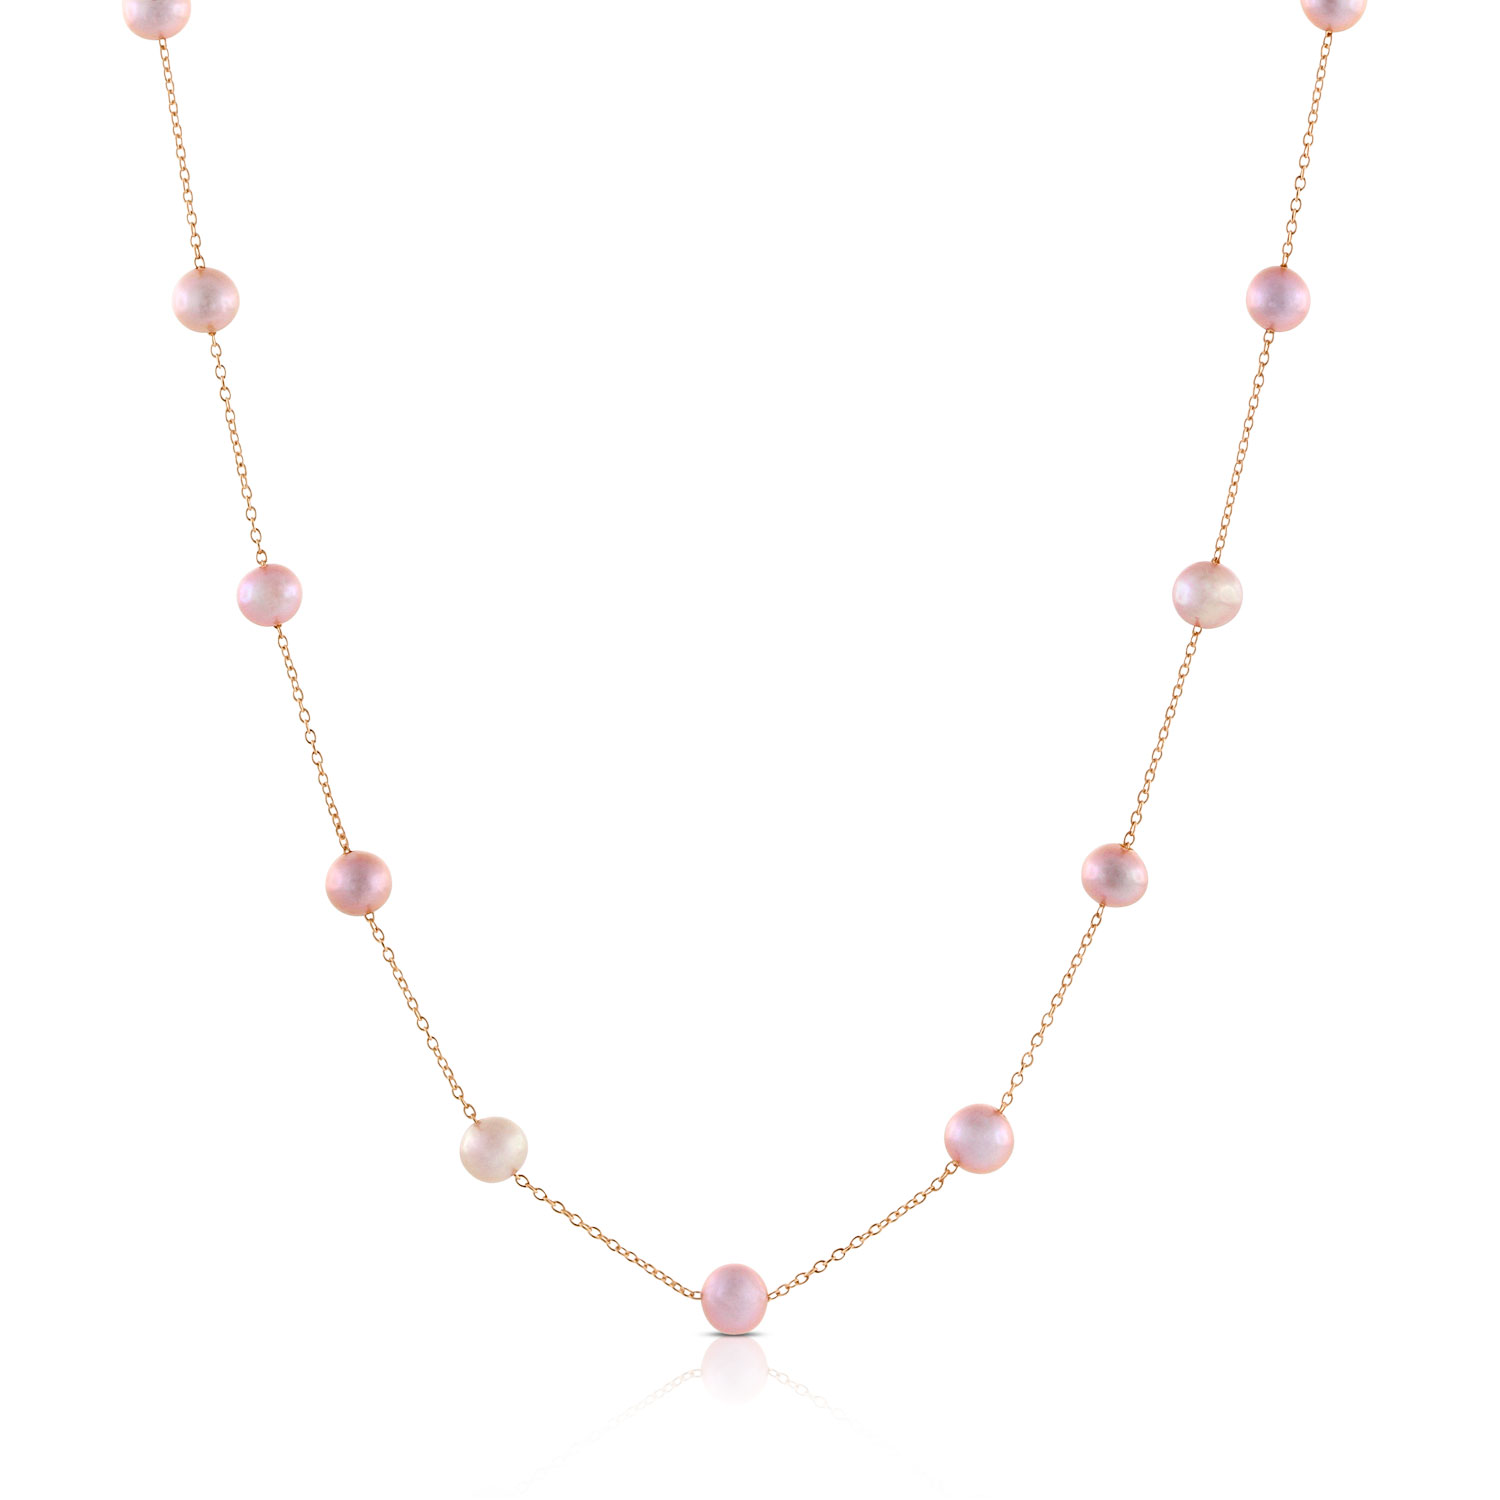 Rose Gold Freshwater Cultured Pearl Necklace 14k Ben